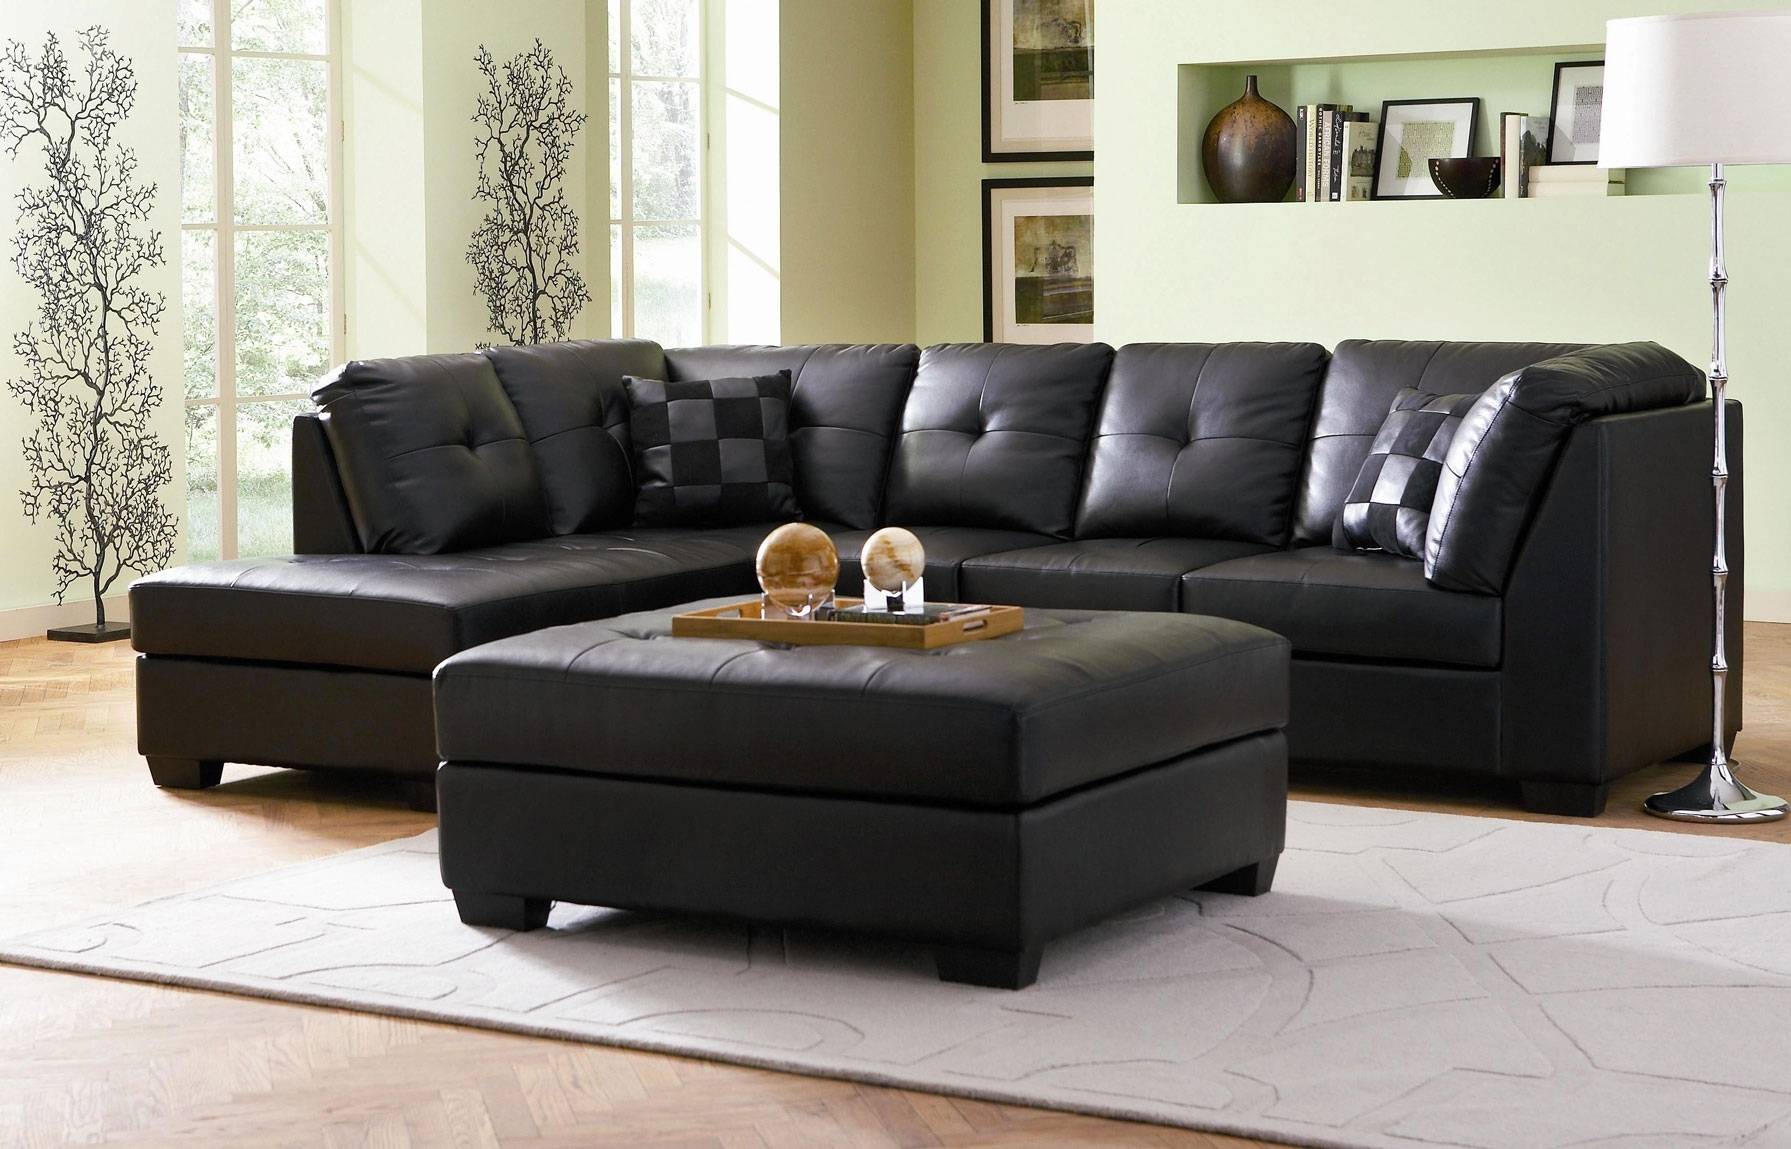 Sectional Sofa: The Best Sectional Sofas Charlotte Nc Sofa Mart Throughout Wilmington Nc Sectional Sofas (Image 6 of 10)